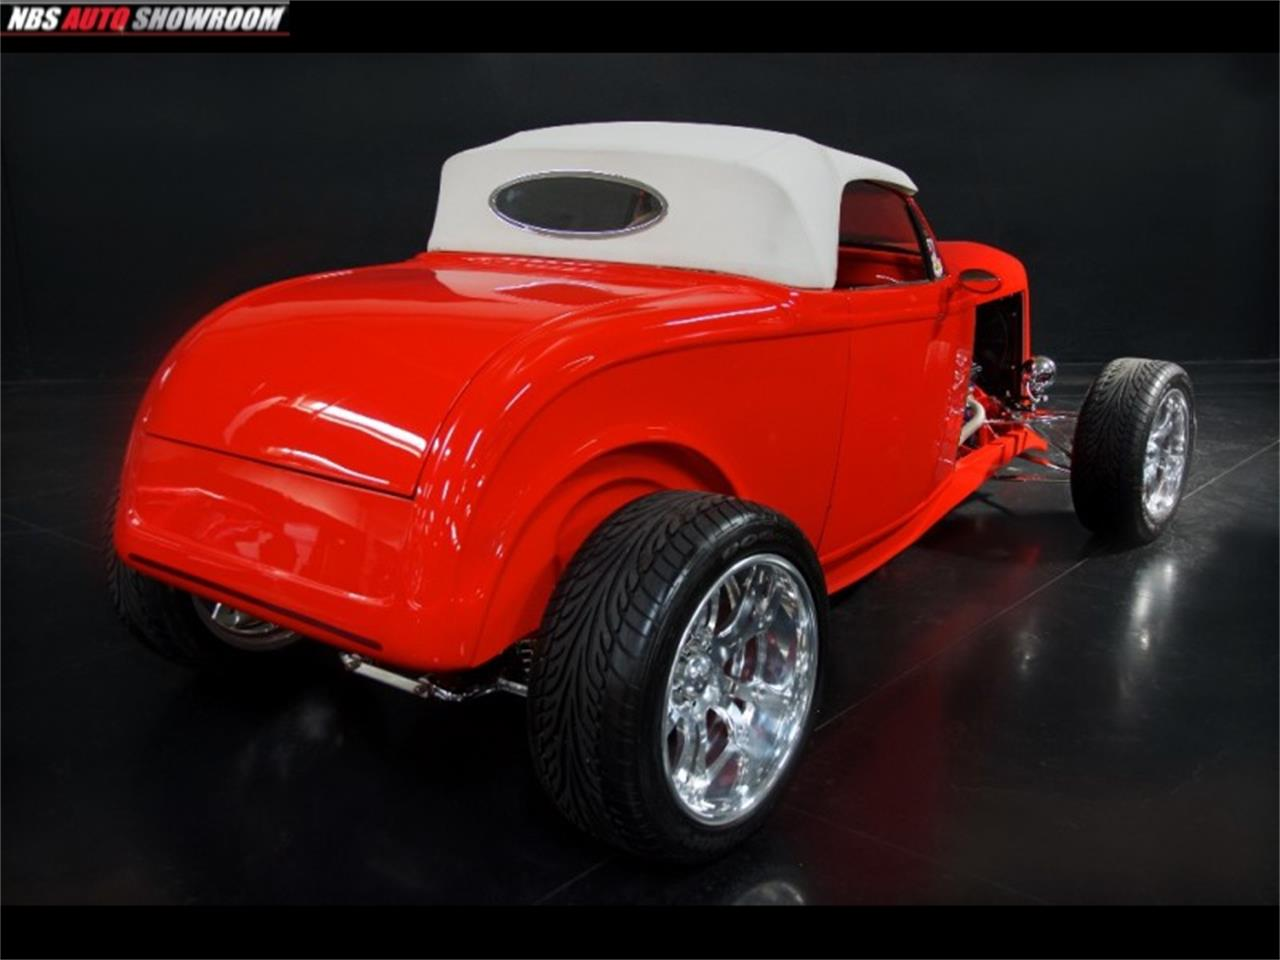 Large Picture of 1932 Roadster located in Milpitas California - $37,546.00 Offered by NBS Auto Showroom - QY4R